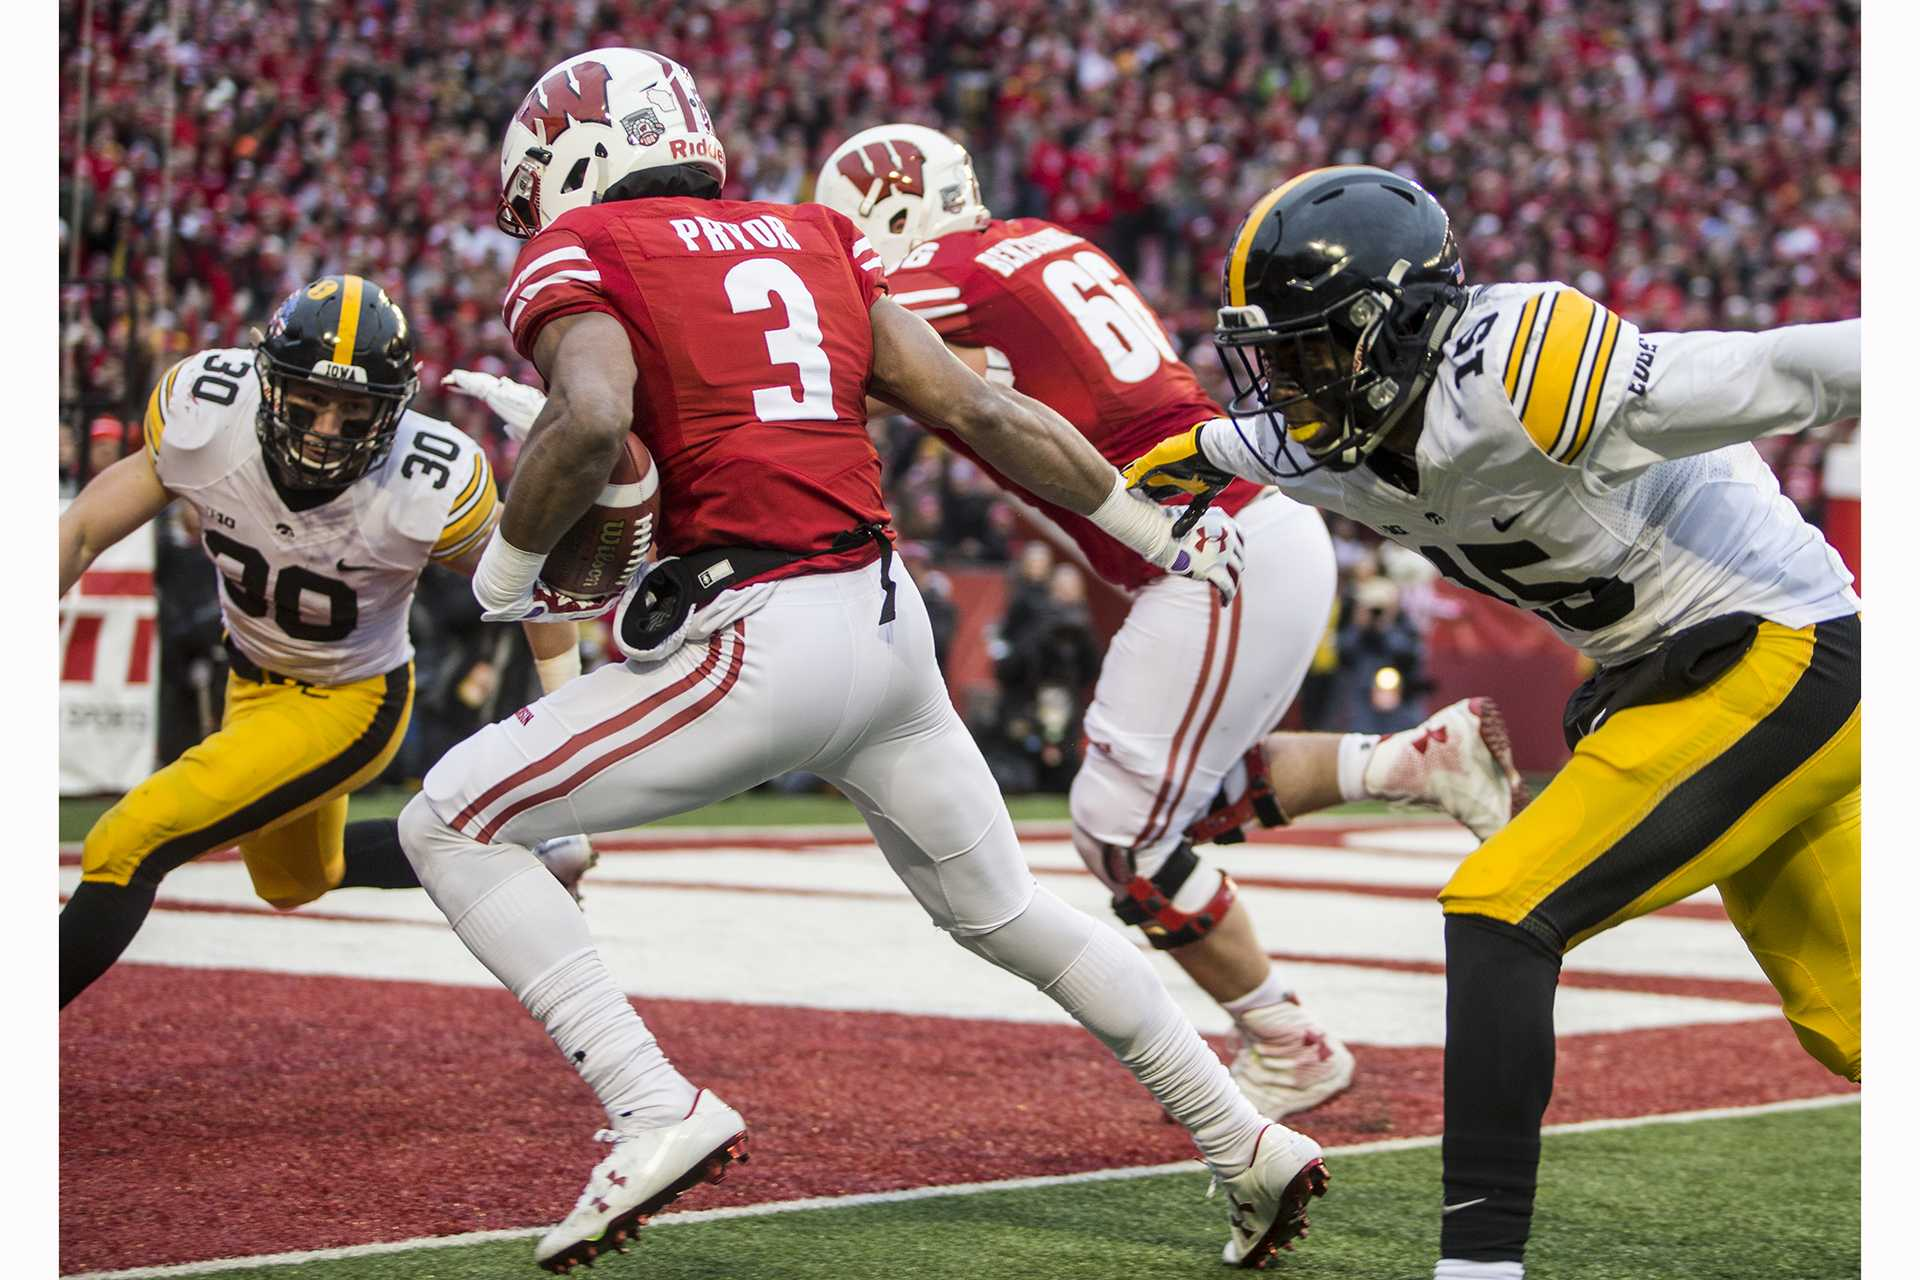 Wisconsin wide receiver Kendric Pryor strides into the end zone during Iowa's game against Wisconsin at Camp Randall Stadium on Saturday, Nov. 11, 2017. The badgers defeated the Hawkeyes 38-14. (Nick Rohlman/The Daily Iowan)